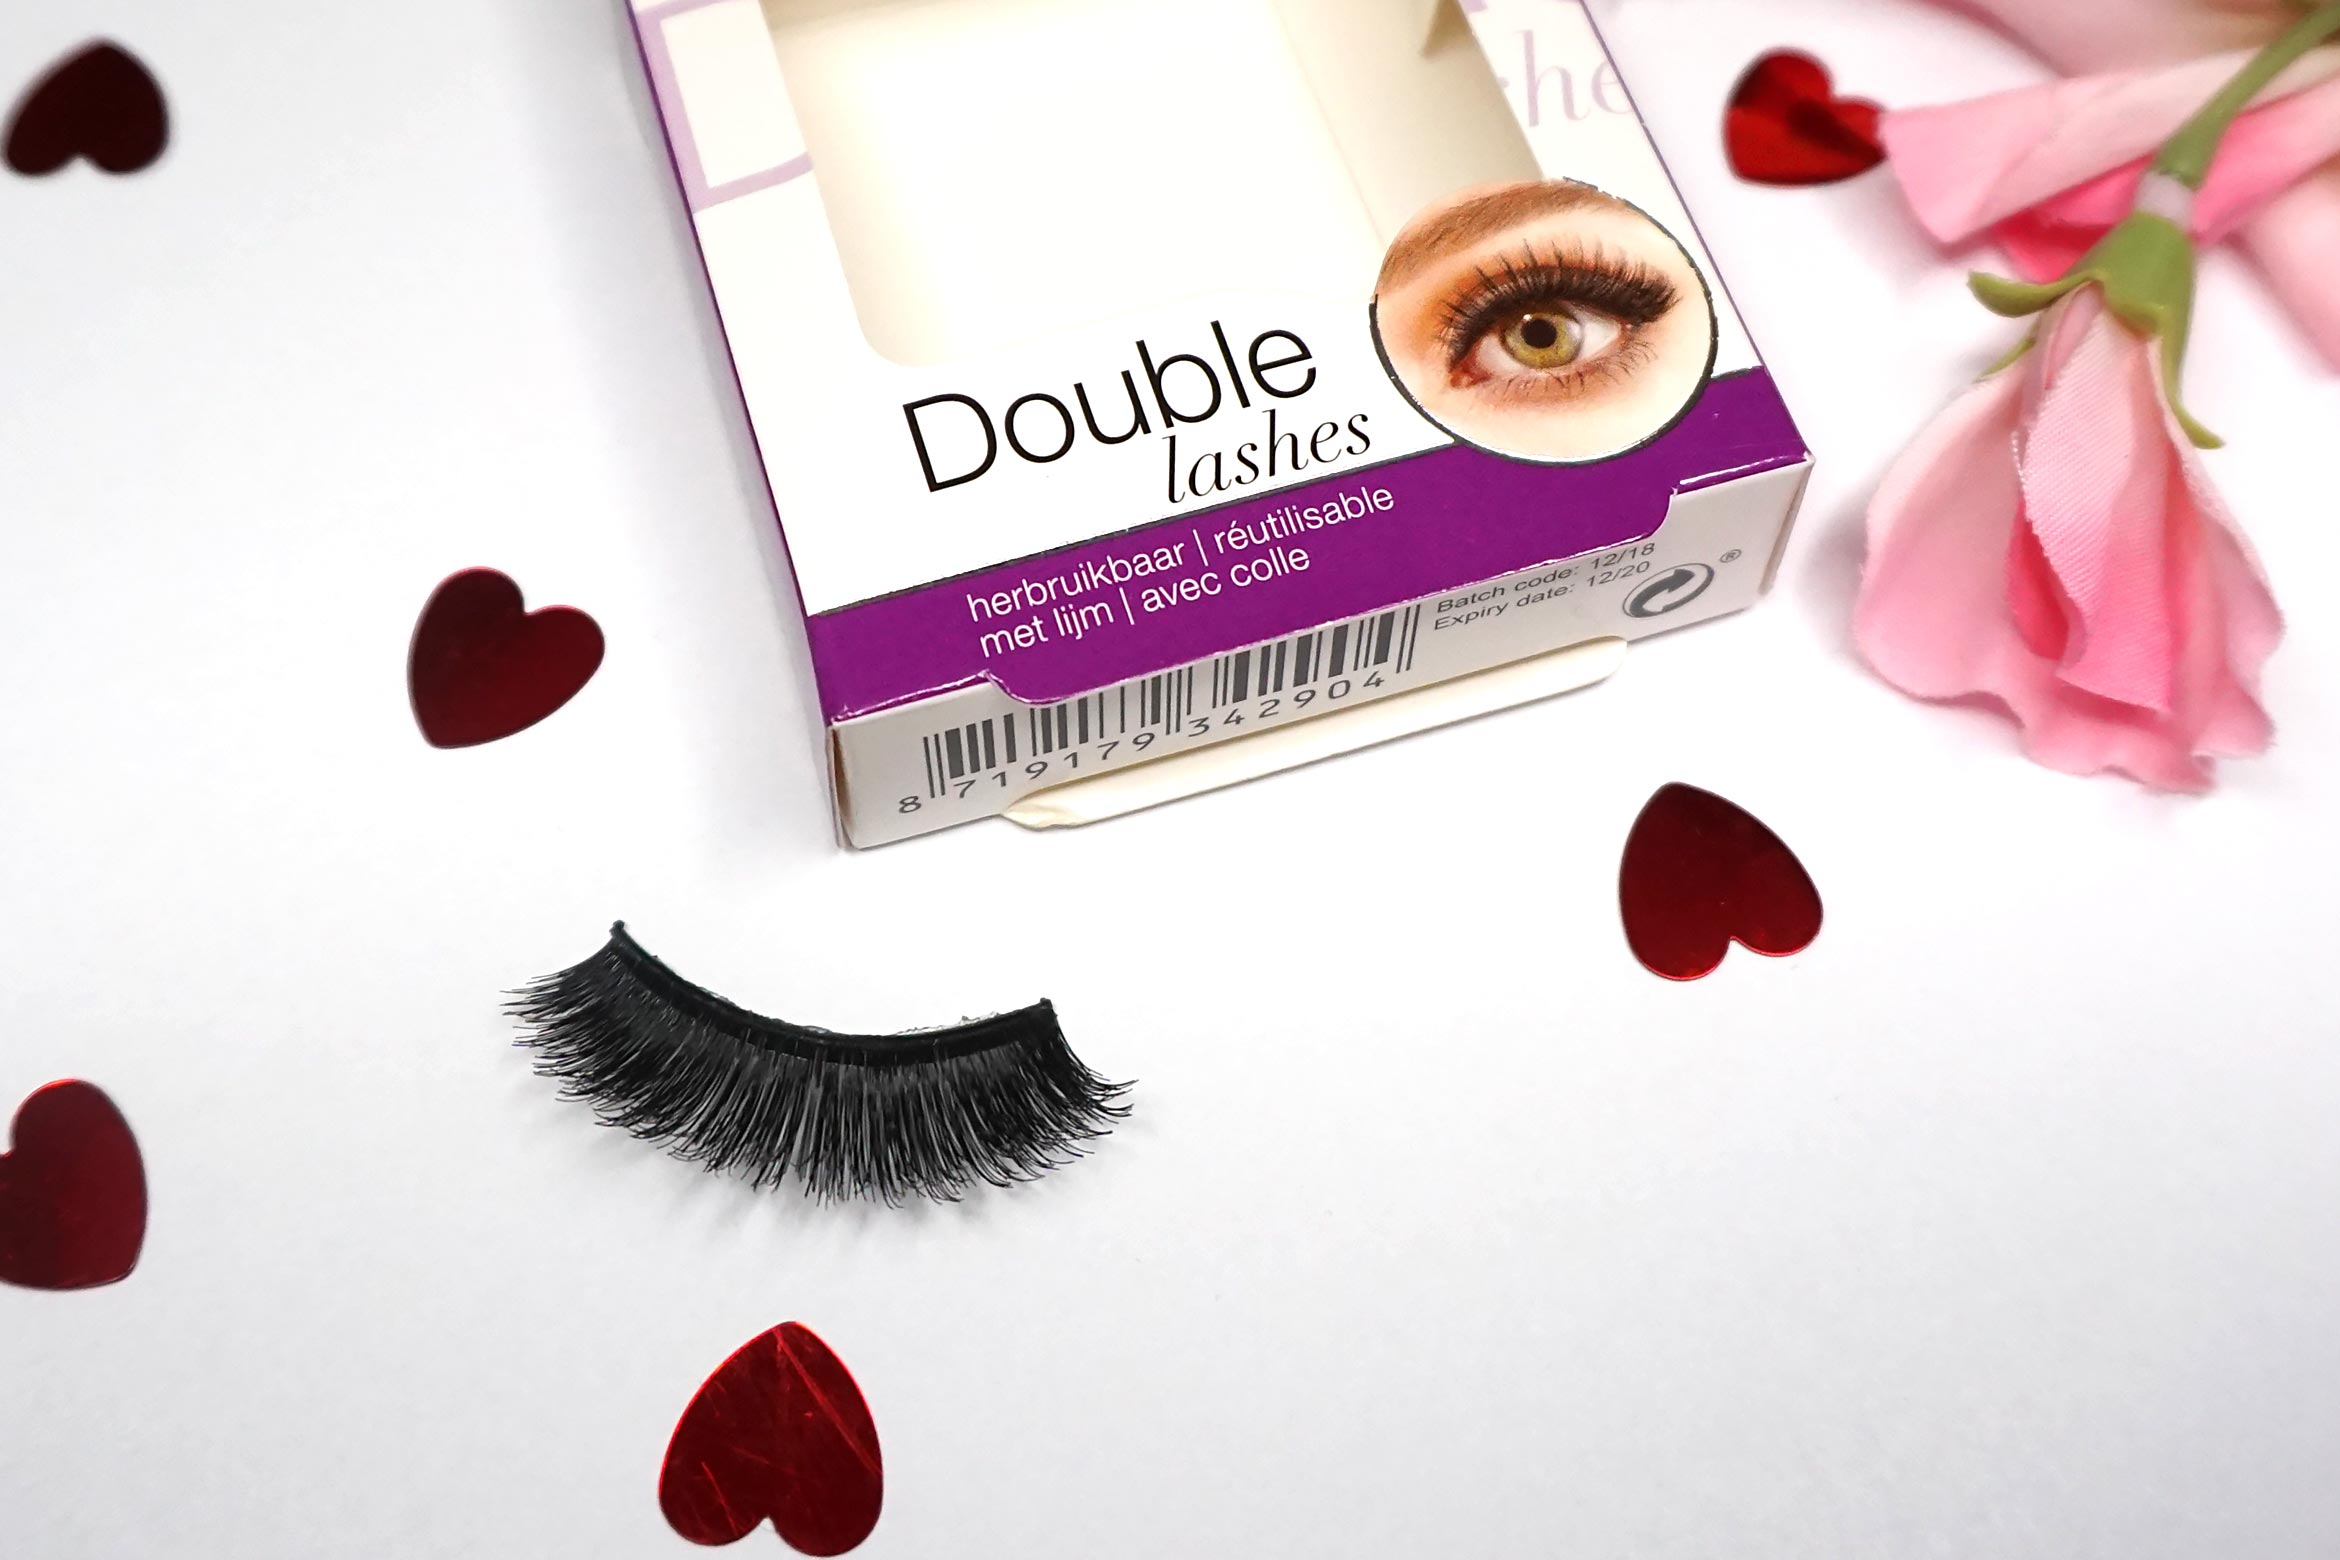 kruidvat-double-lashes-review-1